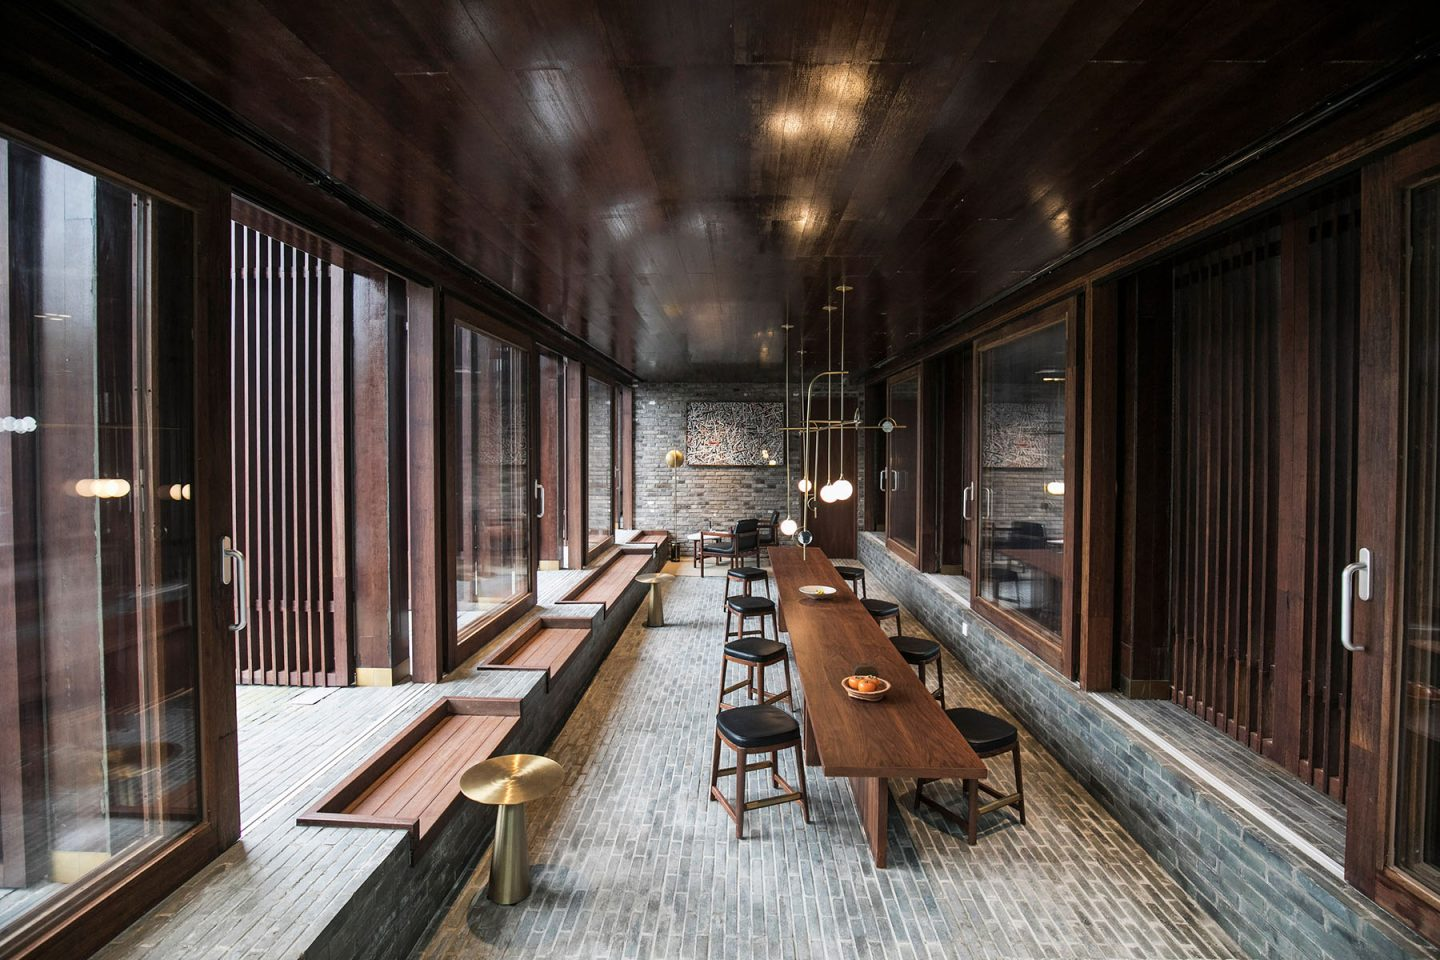 iGNANT-Architecture-Ner&Hu-Tsingpu-Yangzhou-Retreat--04